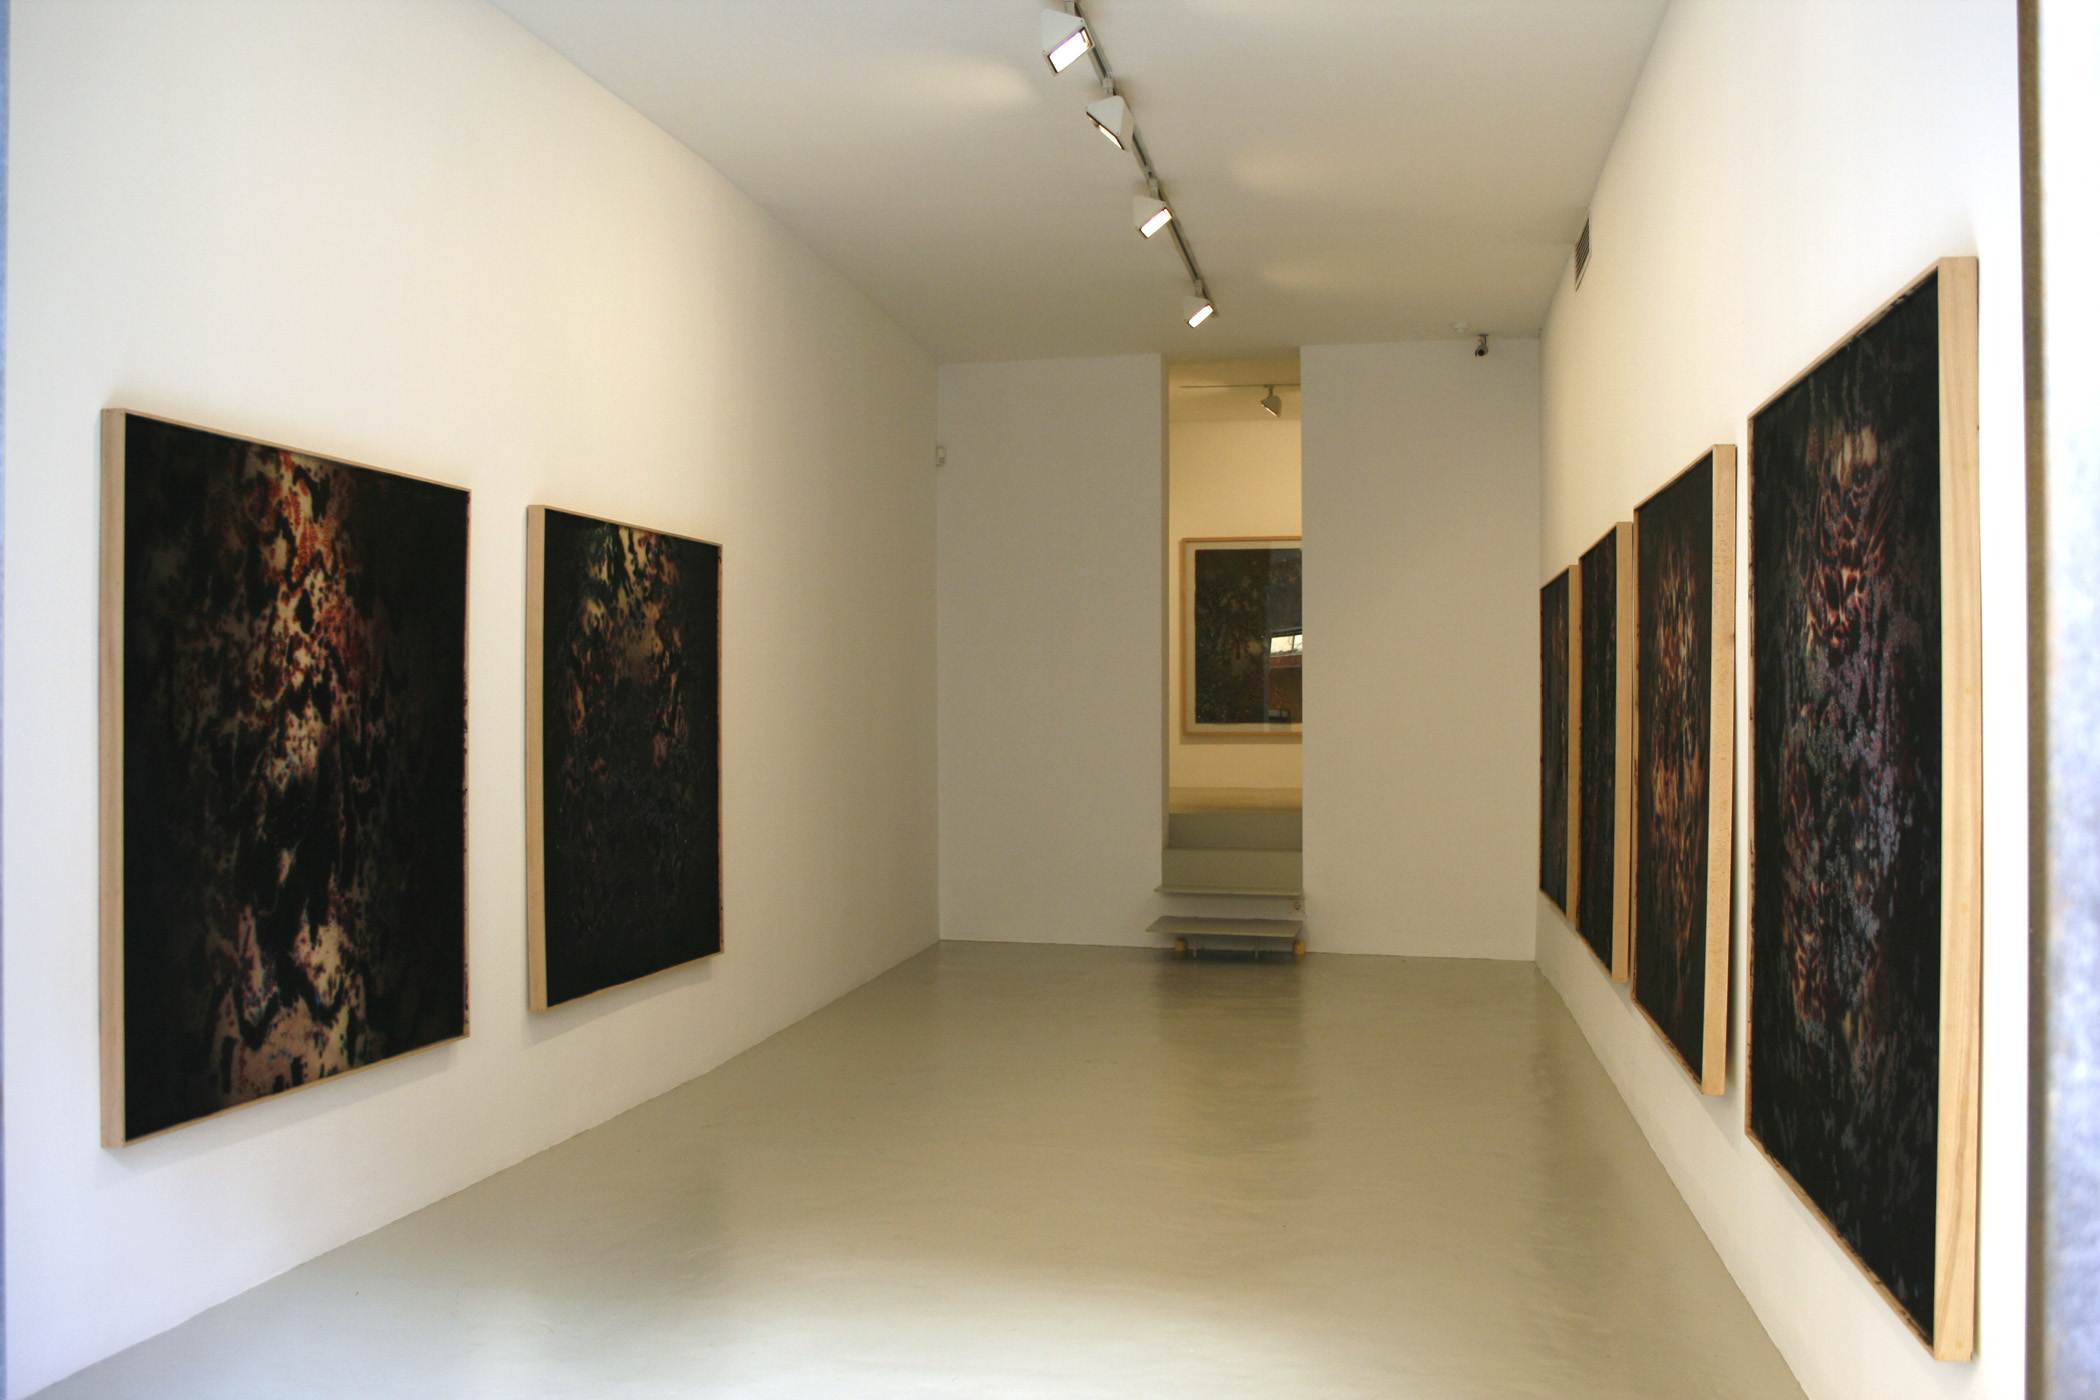 Exhibition view from Jose Maria Sicilia, 2007